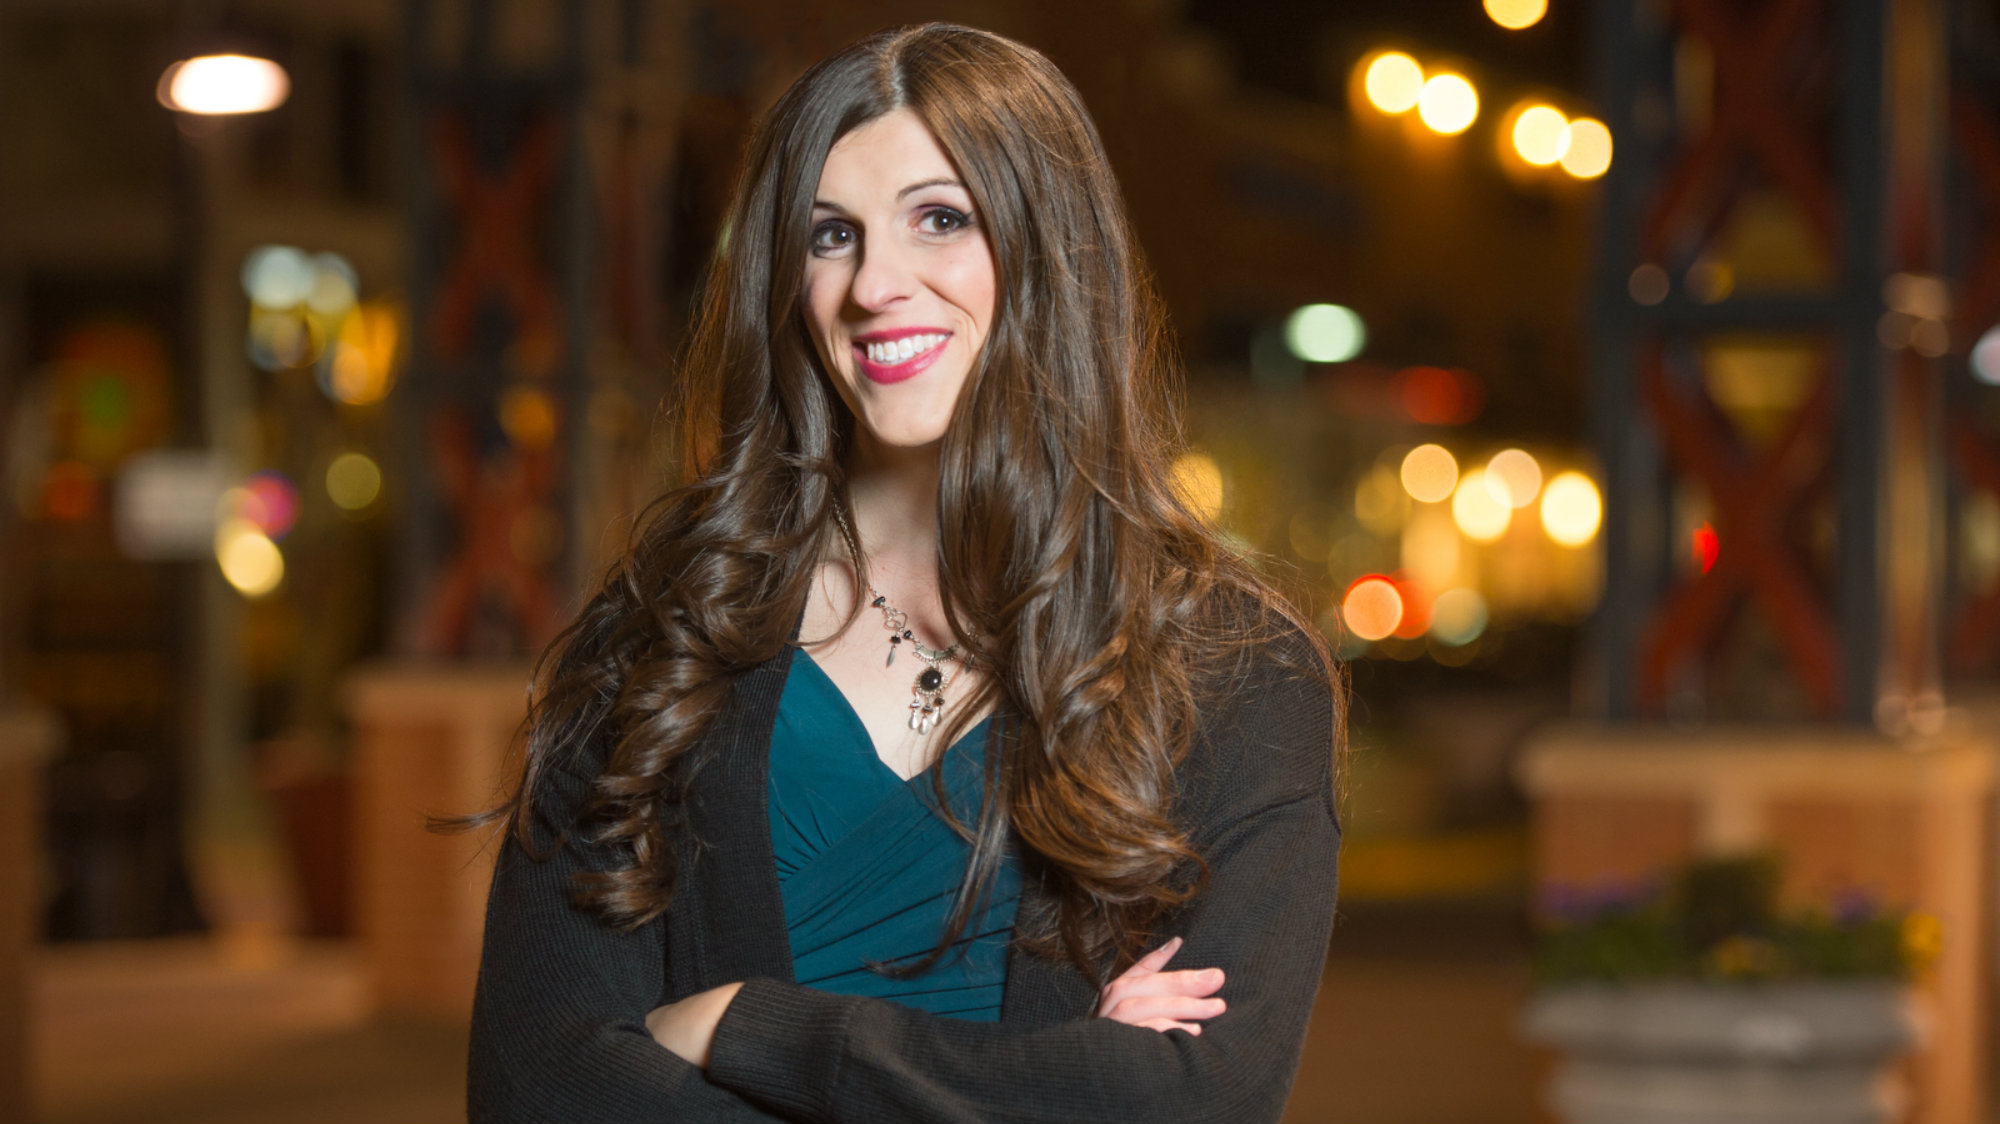 This Woman Just Became The First Trans State Legislator In Virginia